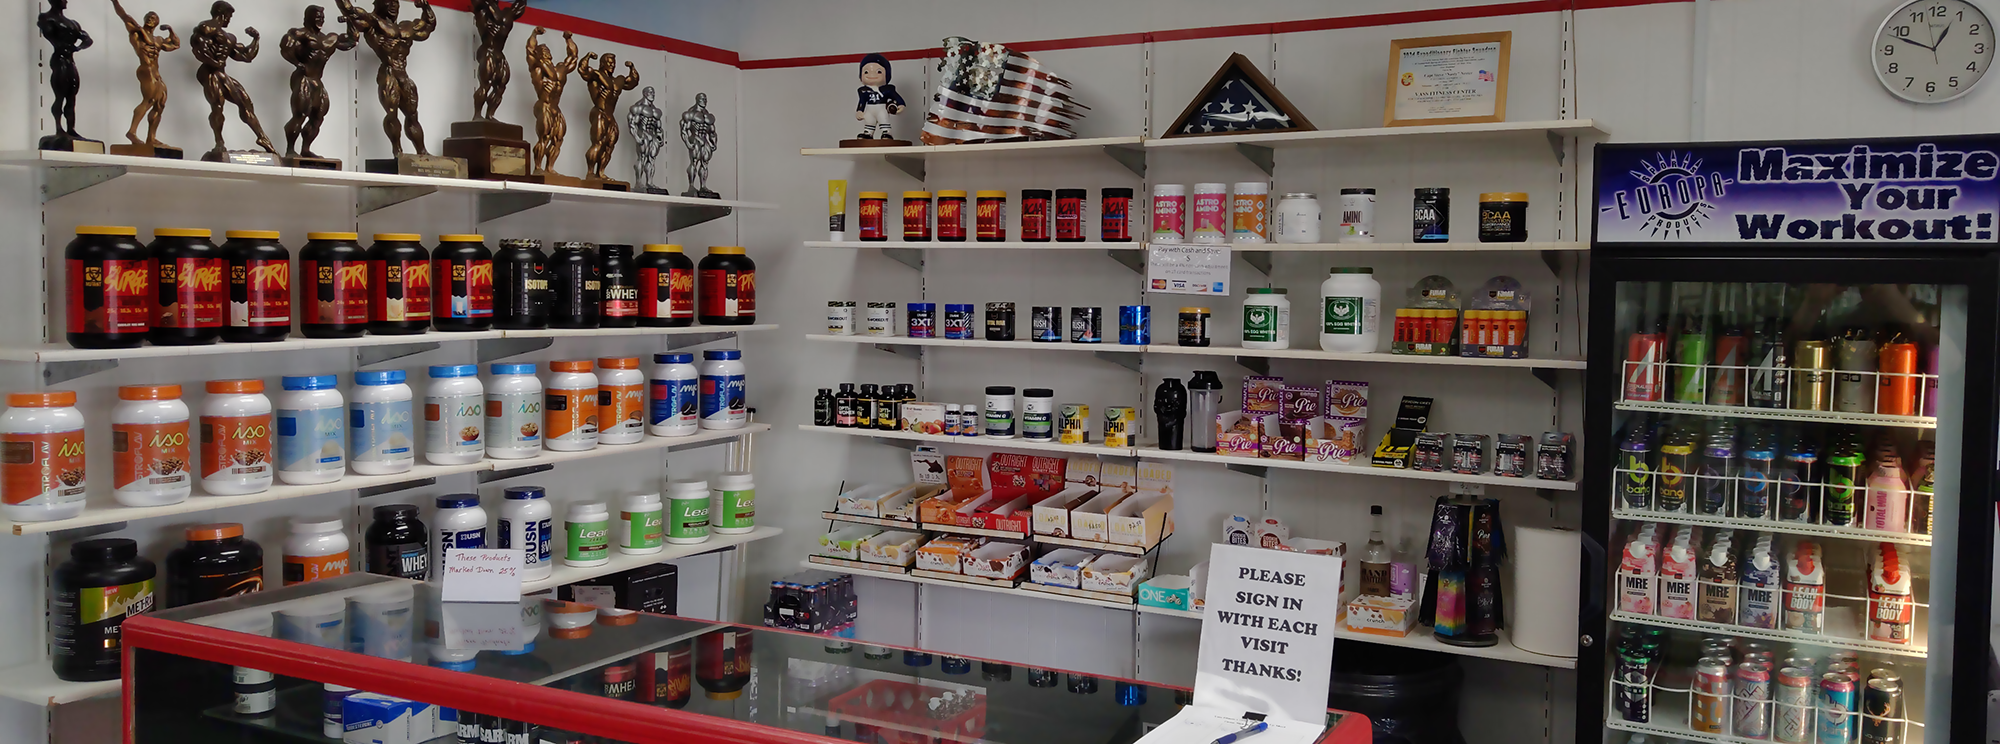 Supplements and Protein